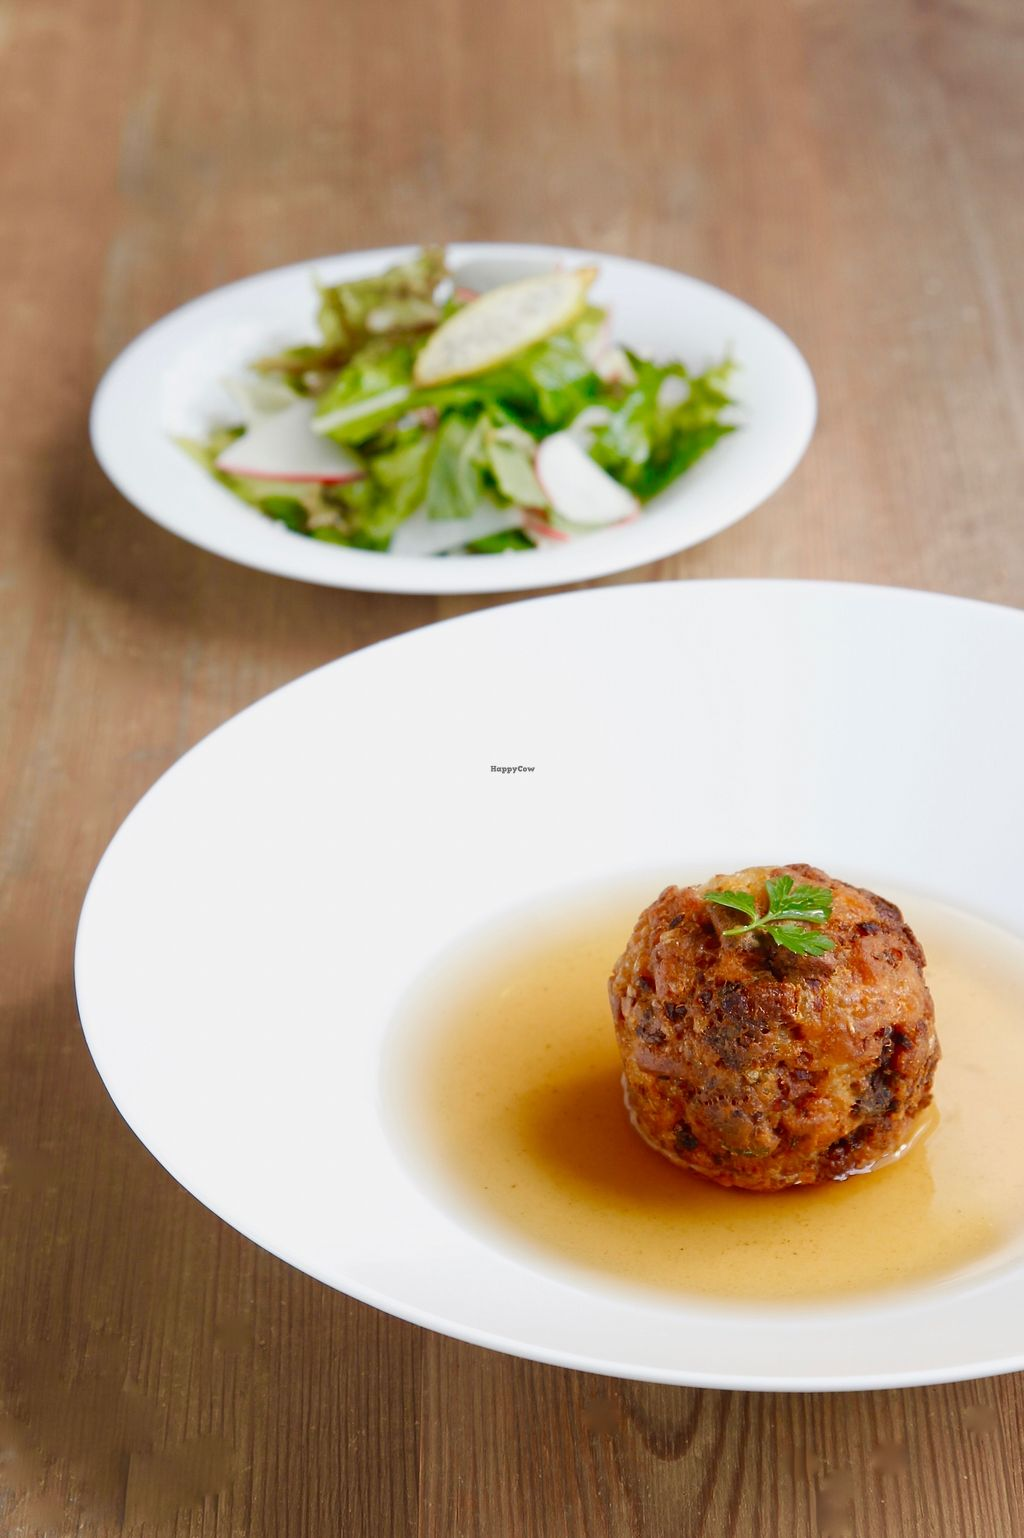 """Photo of Yamato Yakuzen Reset  by <a href=""""/members/profile/fumie"""">fumie</a> <br/>Only available here. Yamato Canederli, giant croquette mix of brown rice, bread and all sorts of vegetables, soaked in our special soup, the vegetable broth with Japanese wild herbs. One of a kind! Come with side dish <br/> January 6, 2018  - <a href='/contact/abuse/image/108425/343523'>Report</a>"""